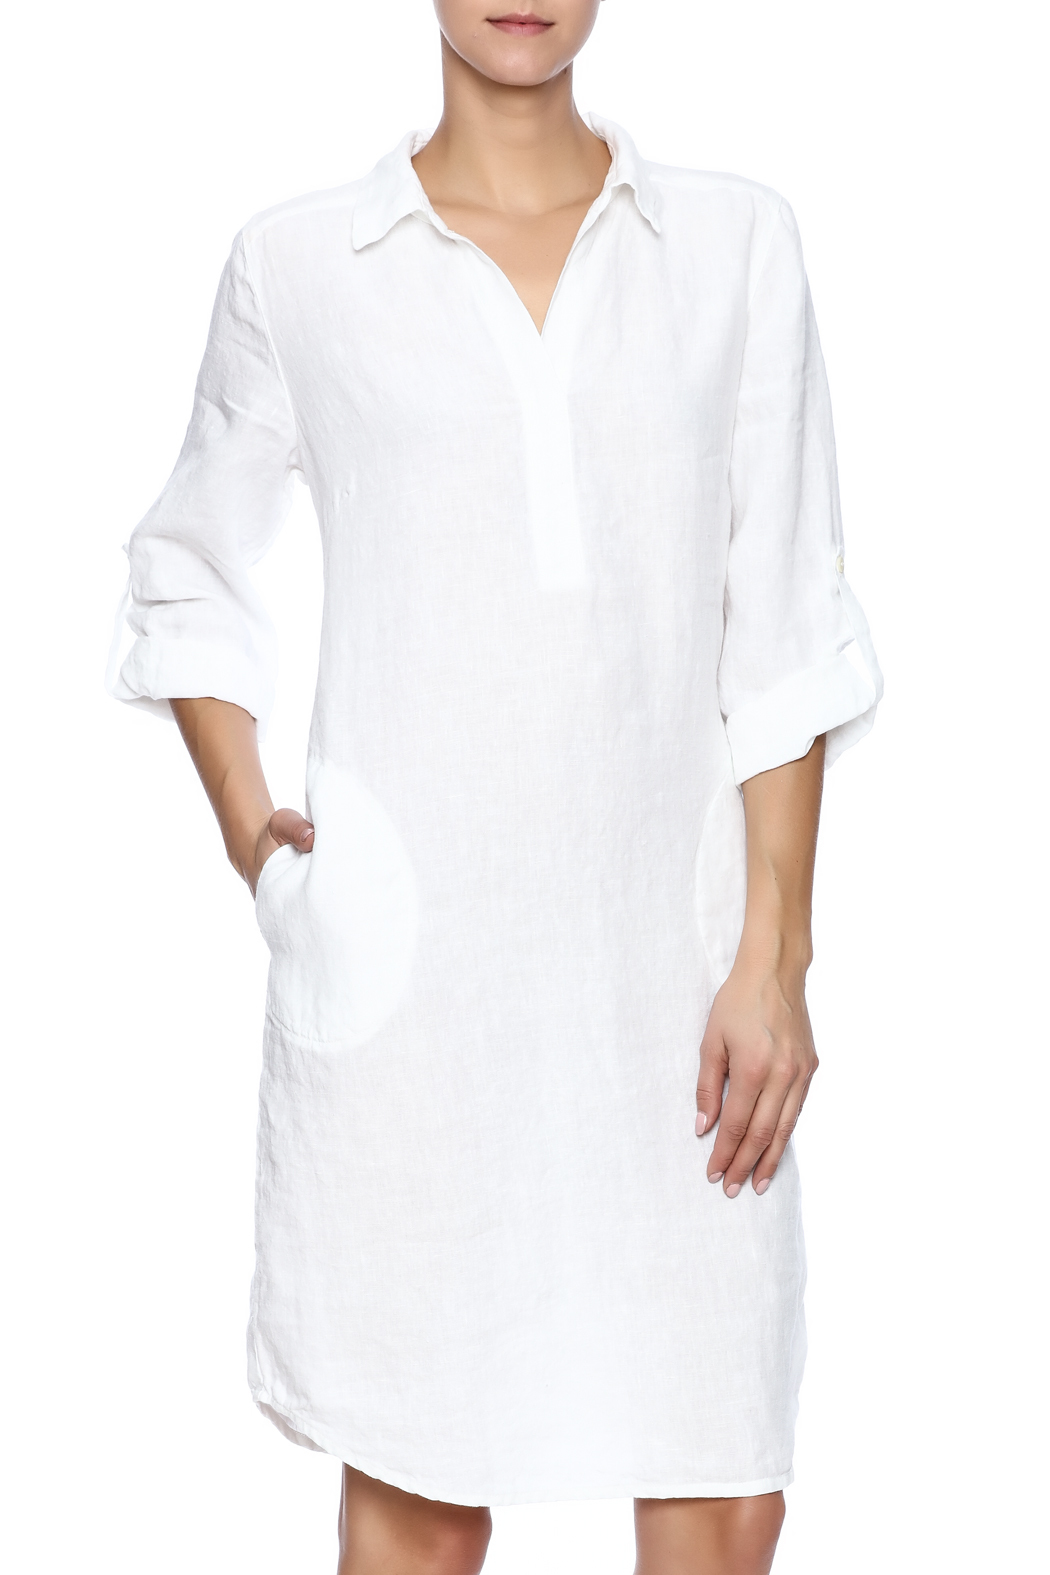 Nuthatch White Linen Shirt Dress From Williamsburg By East Of The